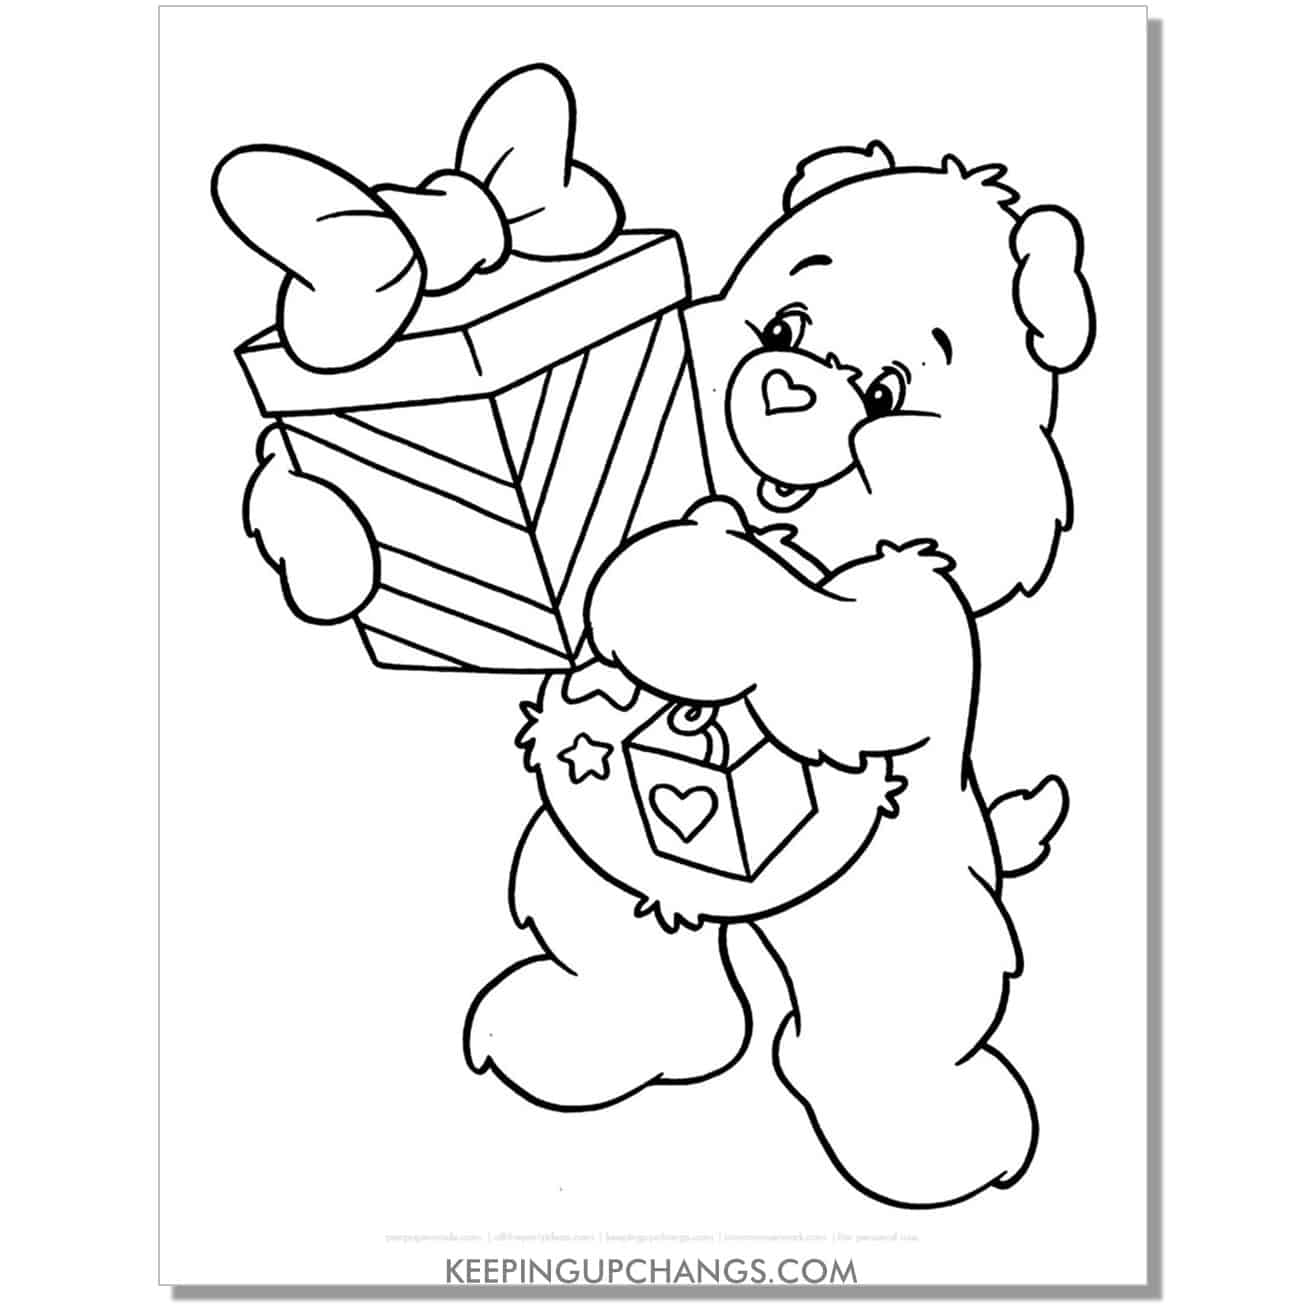 surprise care bear coloring page holding gift.